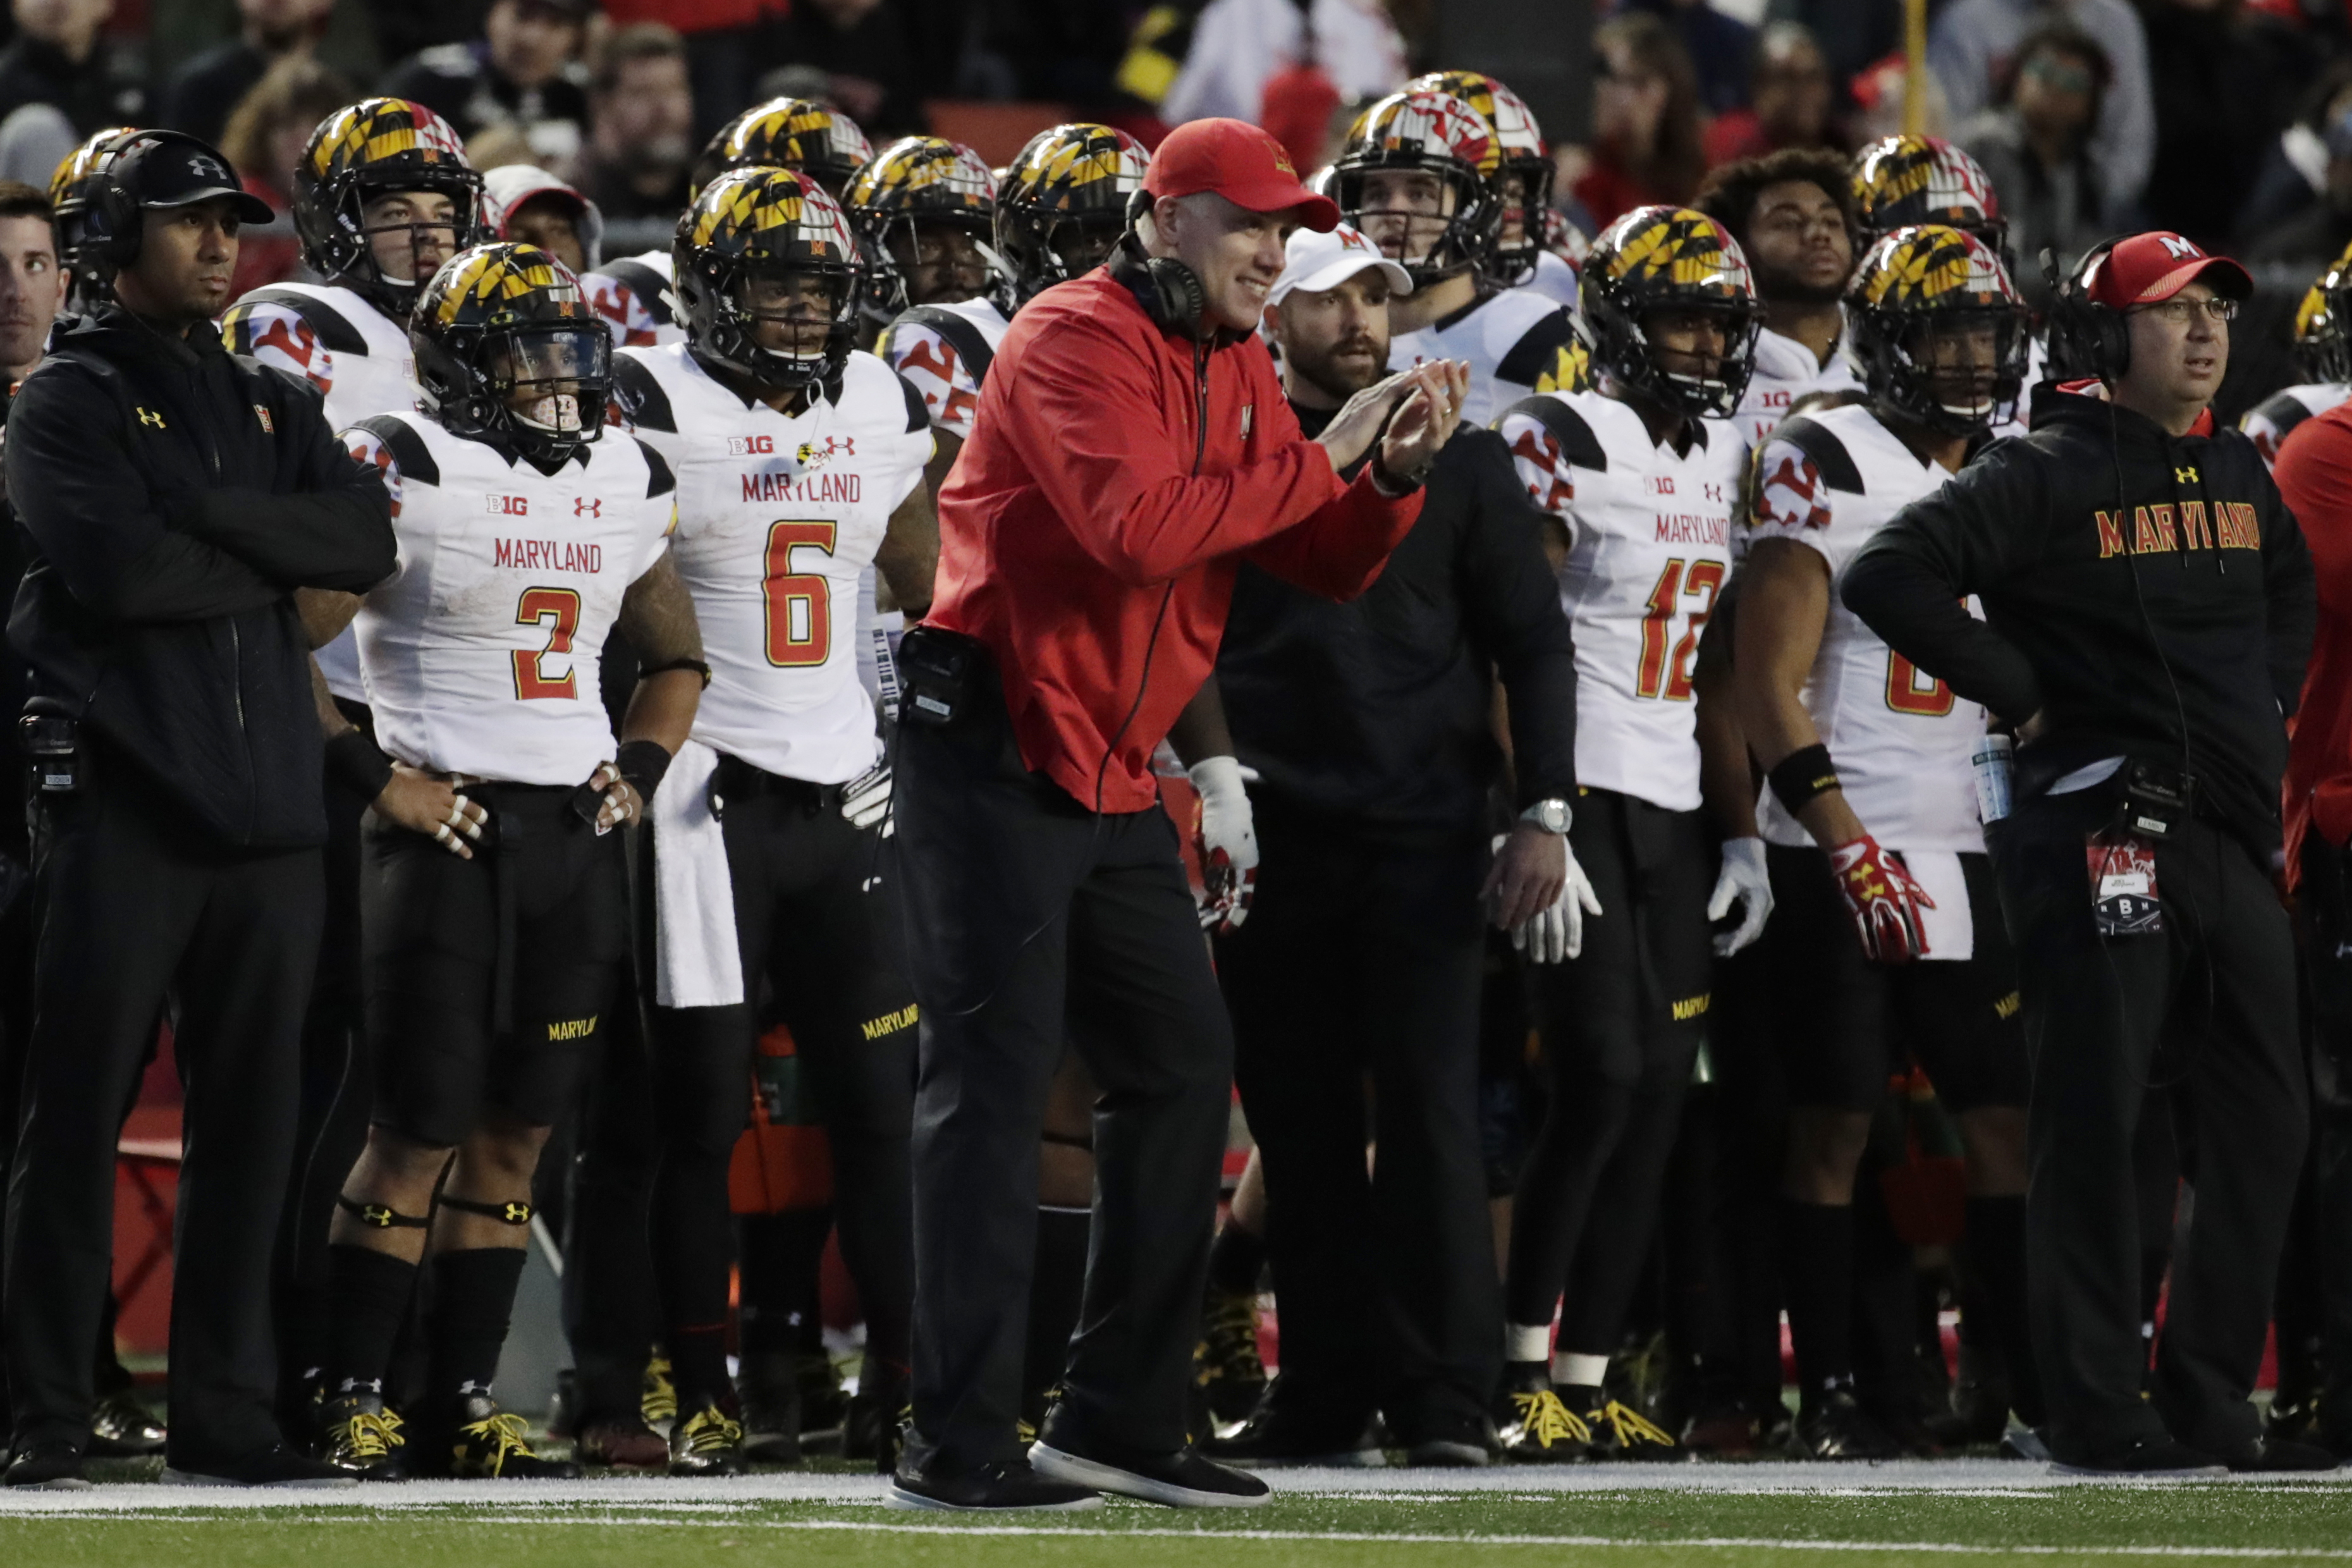 DJ Durkin has gone 10-15 in his two years as head coach at Maryland -- a win total that might not be enough for a school that paid $50 million to exit the ACC and enter the Big Ten.